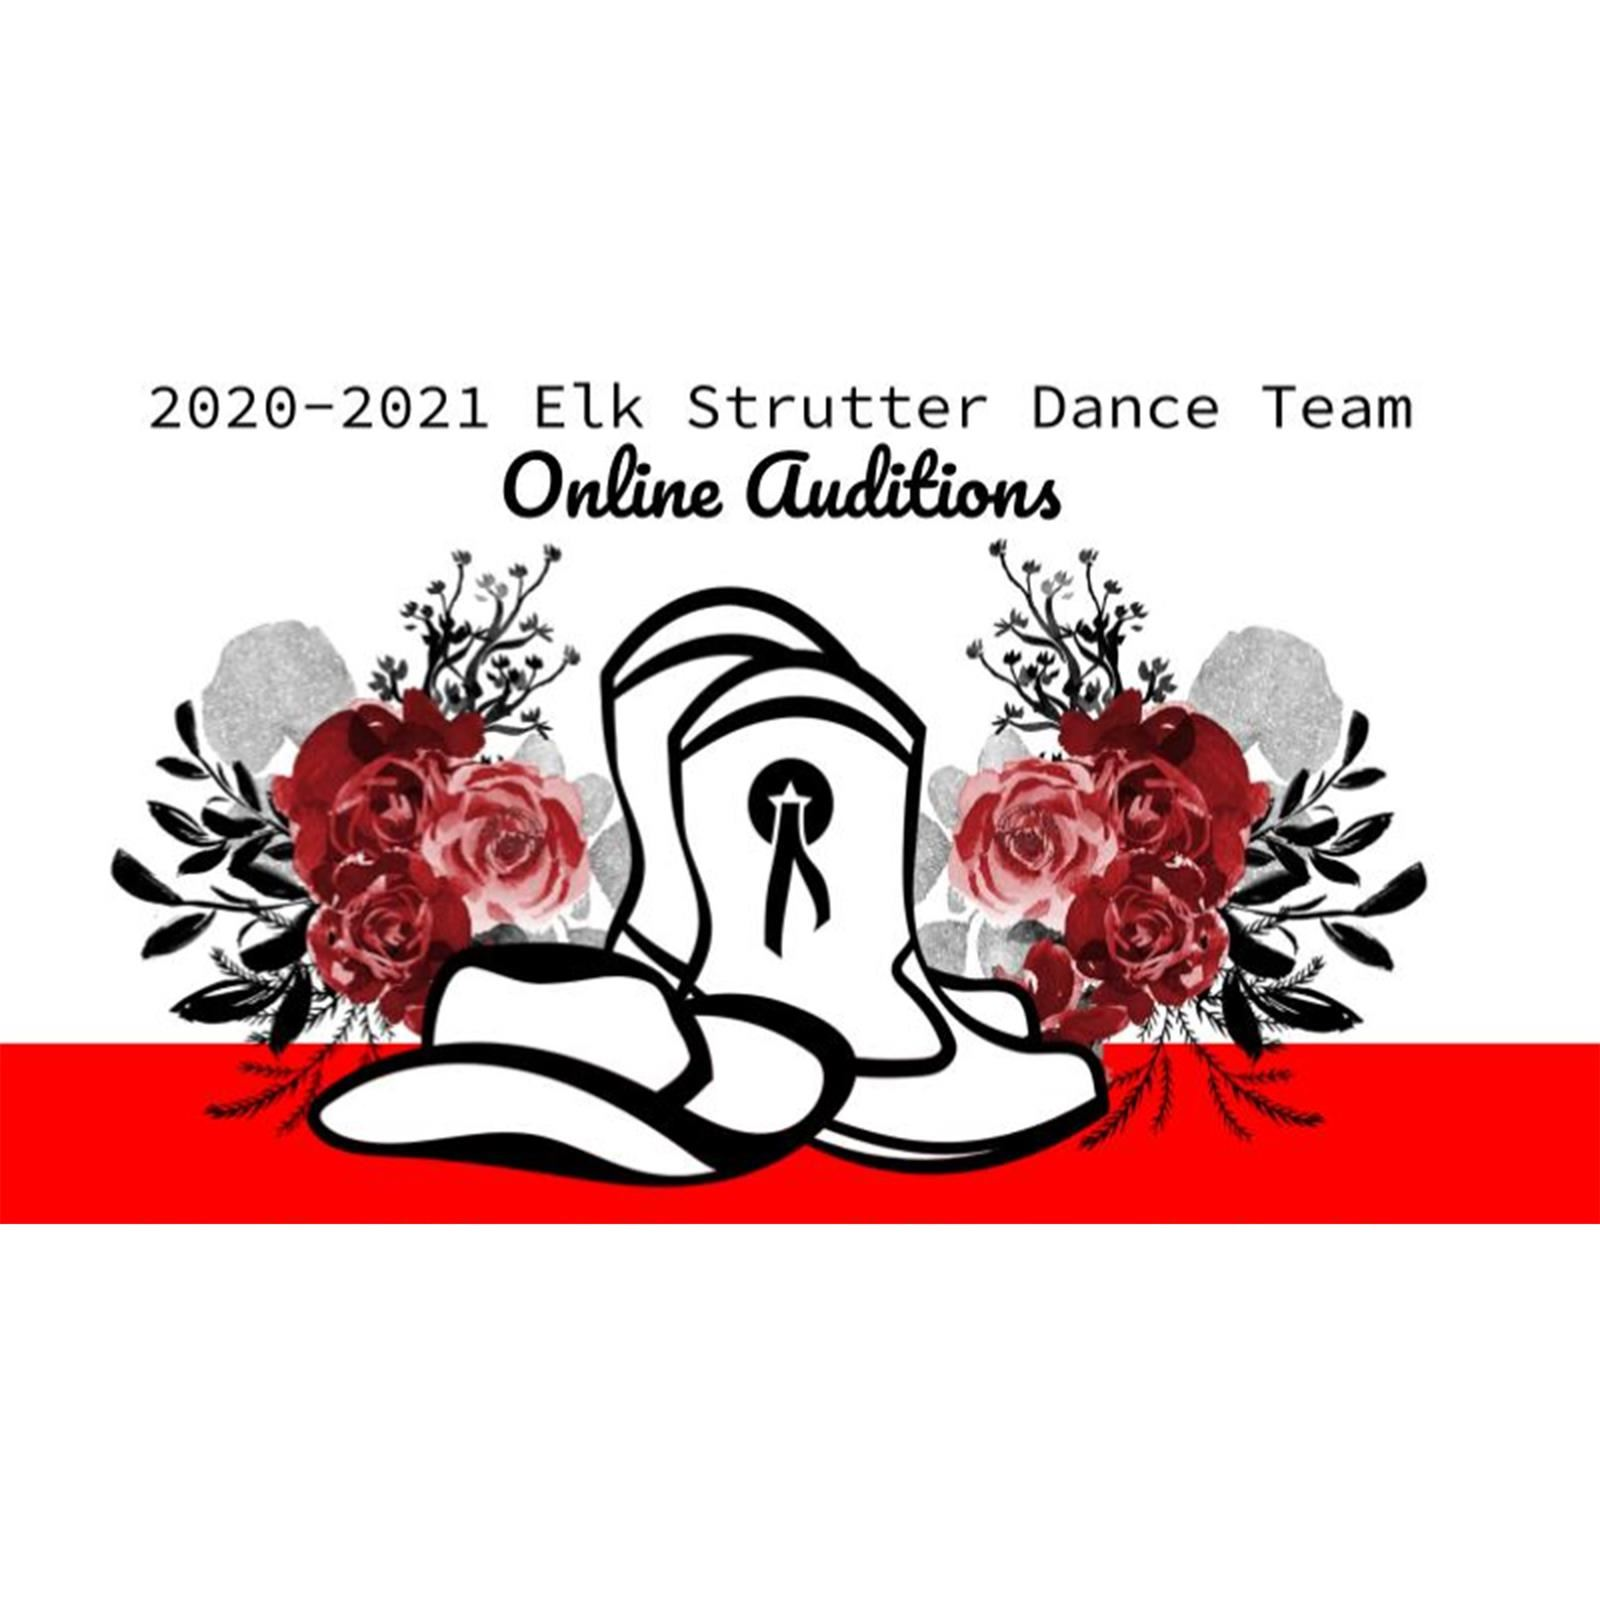 Boots and hat with flowers text: 2020-2021 Elk Strutters Online Tryouts